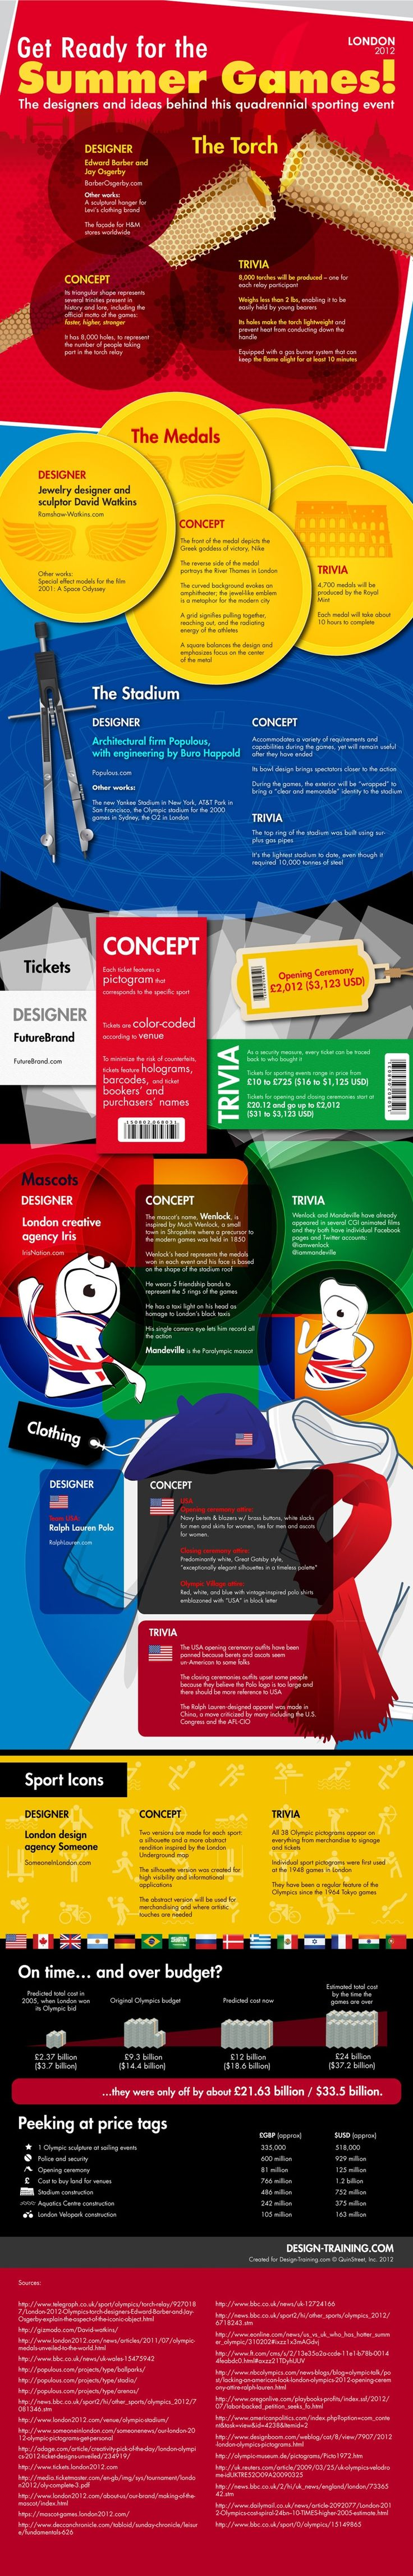 The Designers and Ideas Behind the 2012 Summer Olympics Infographic